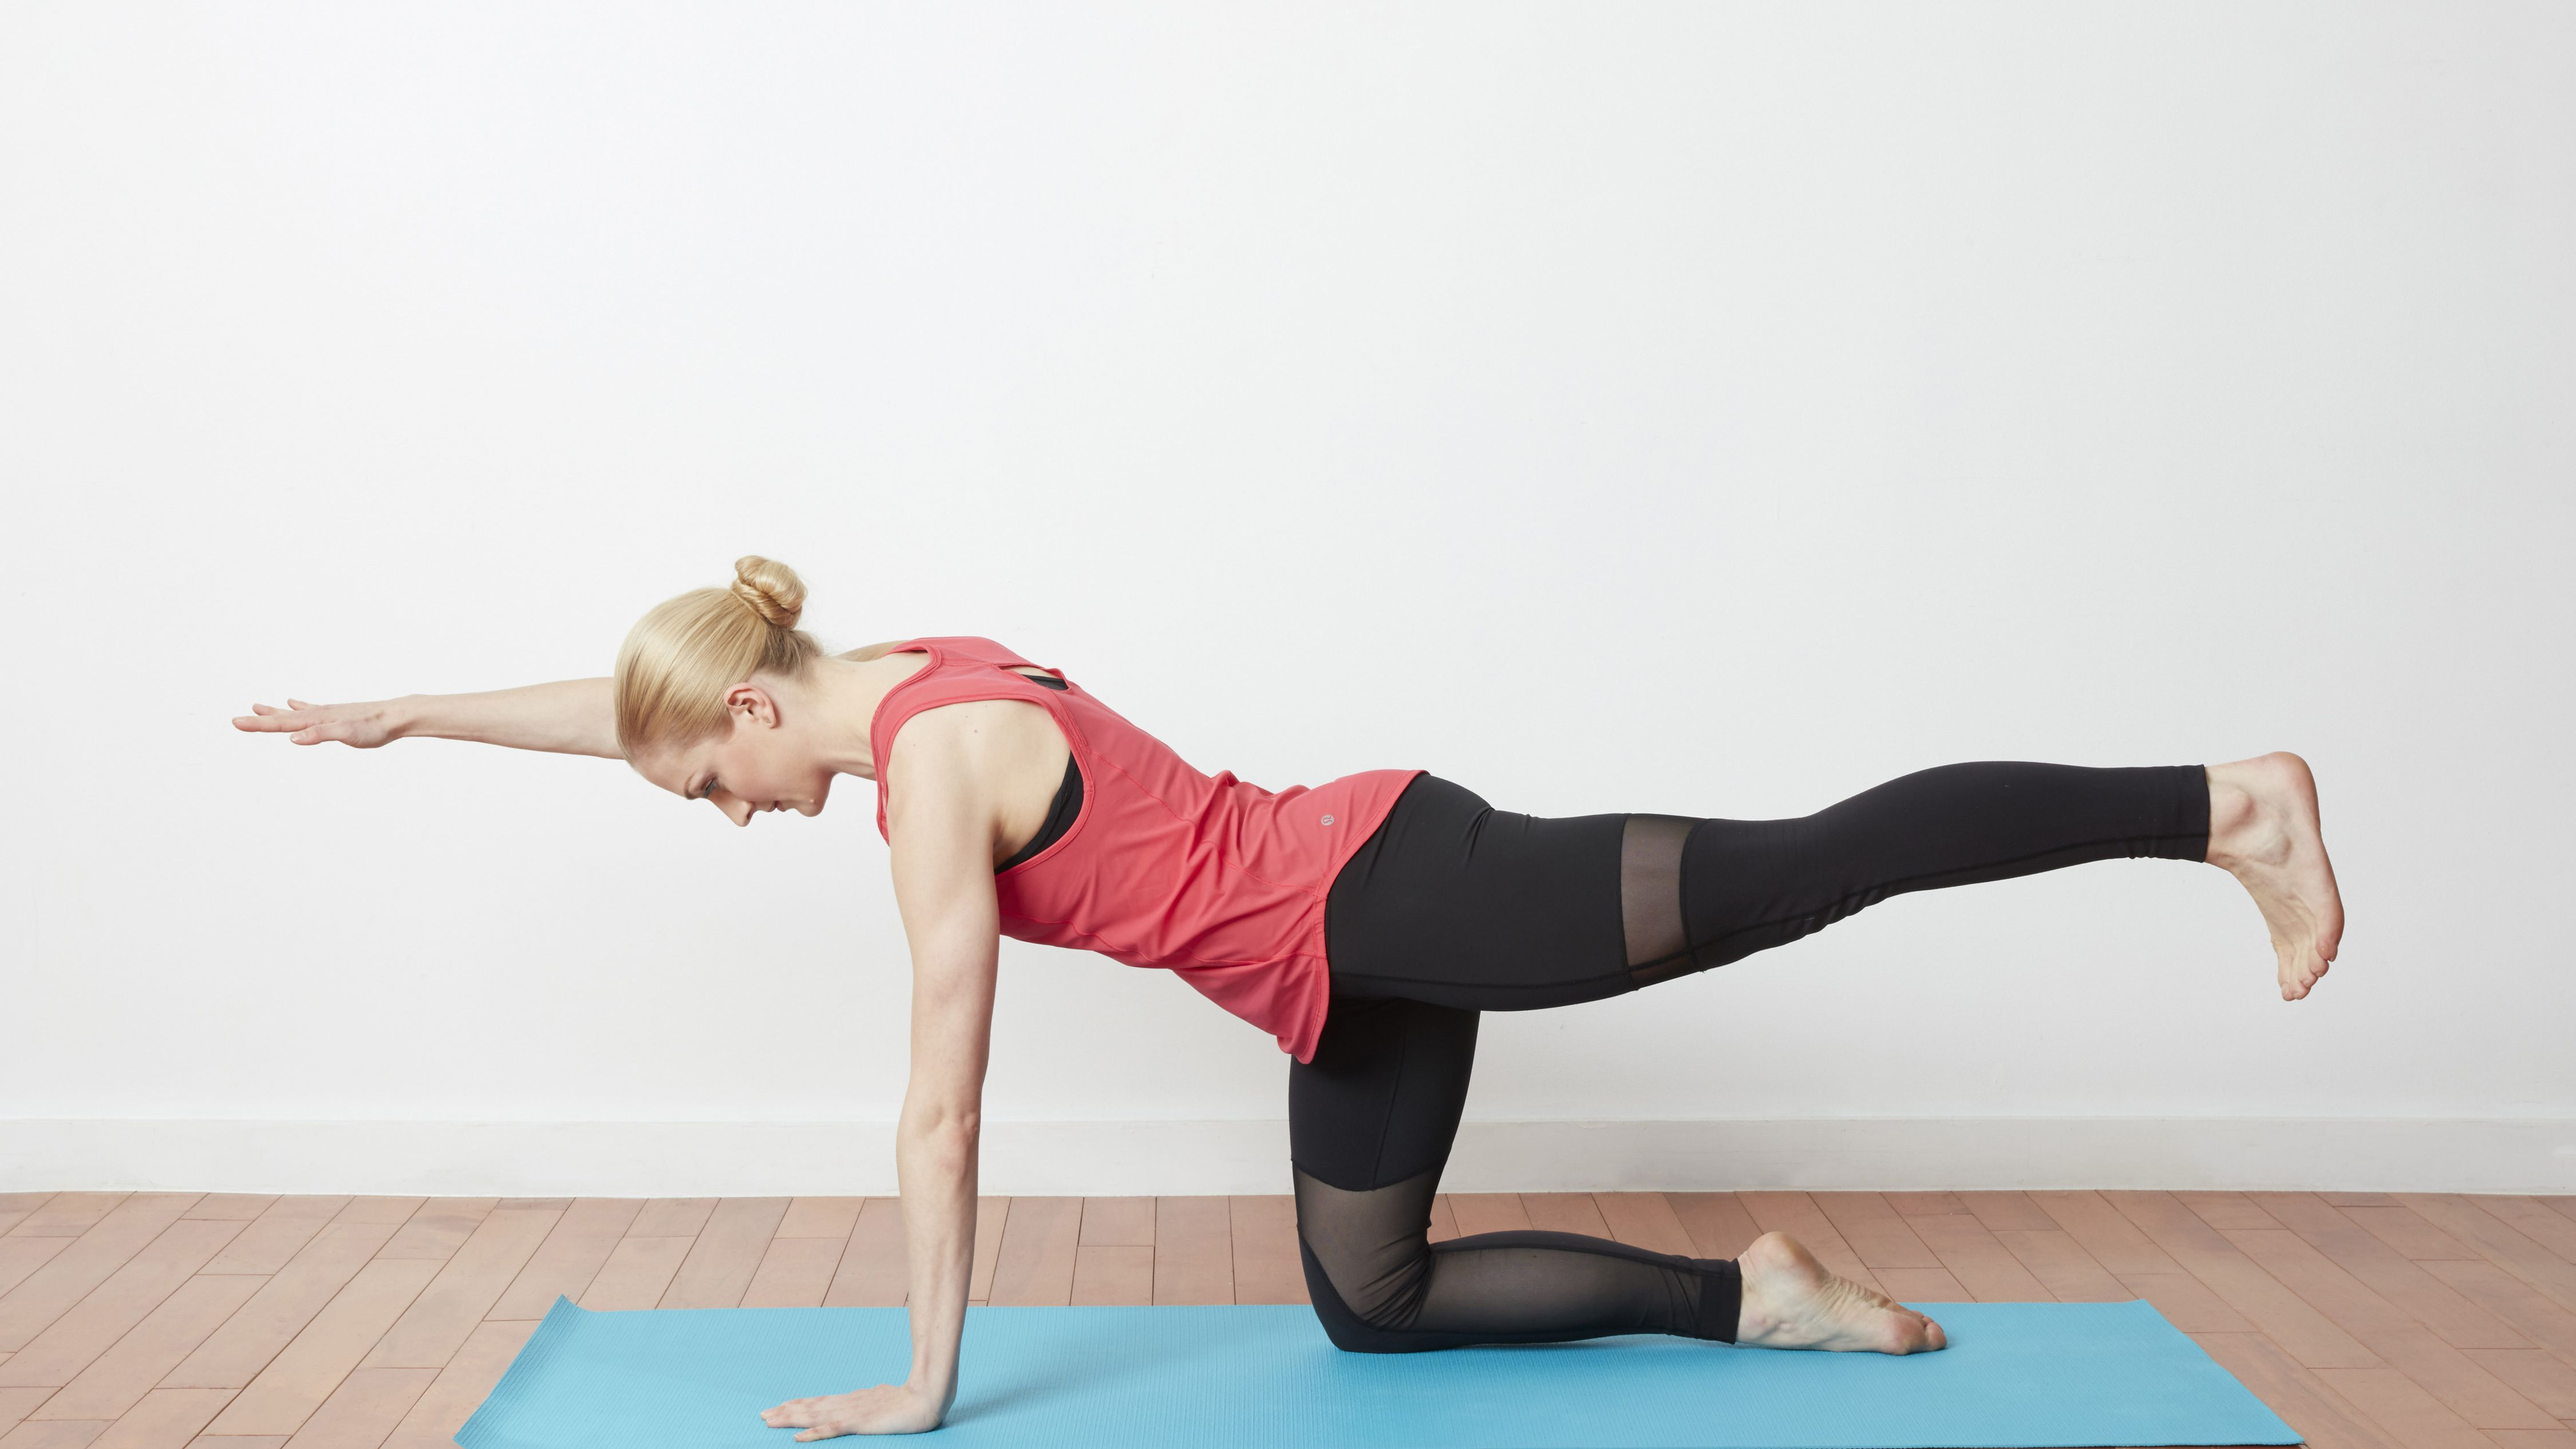 How to Do the Bird-Dog Exercise